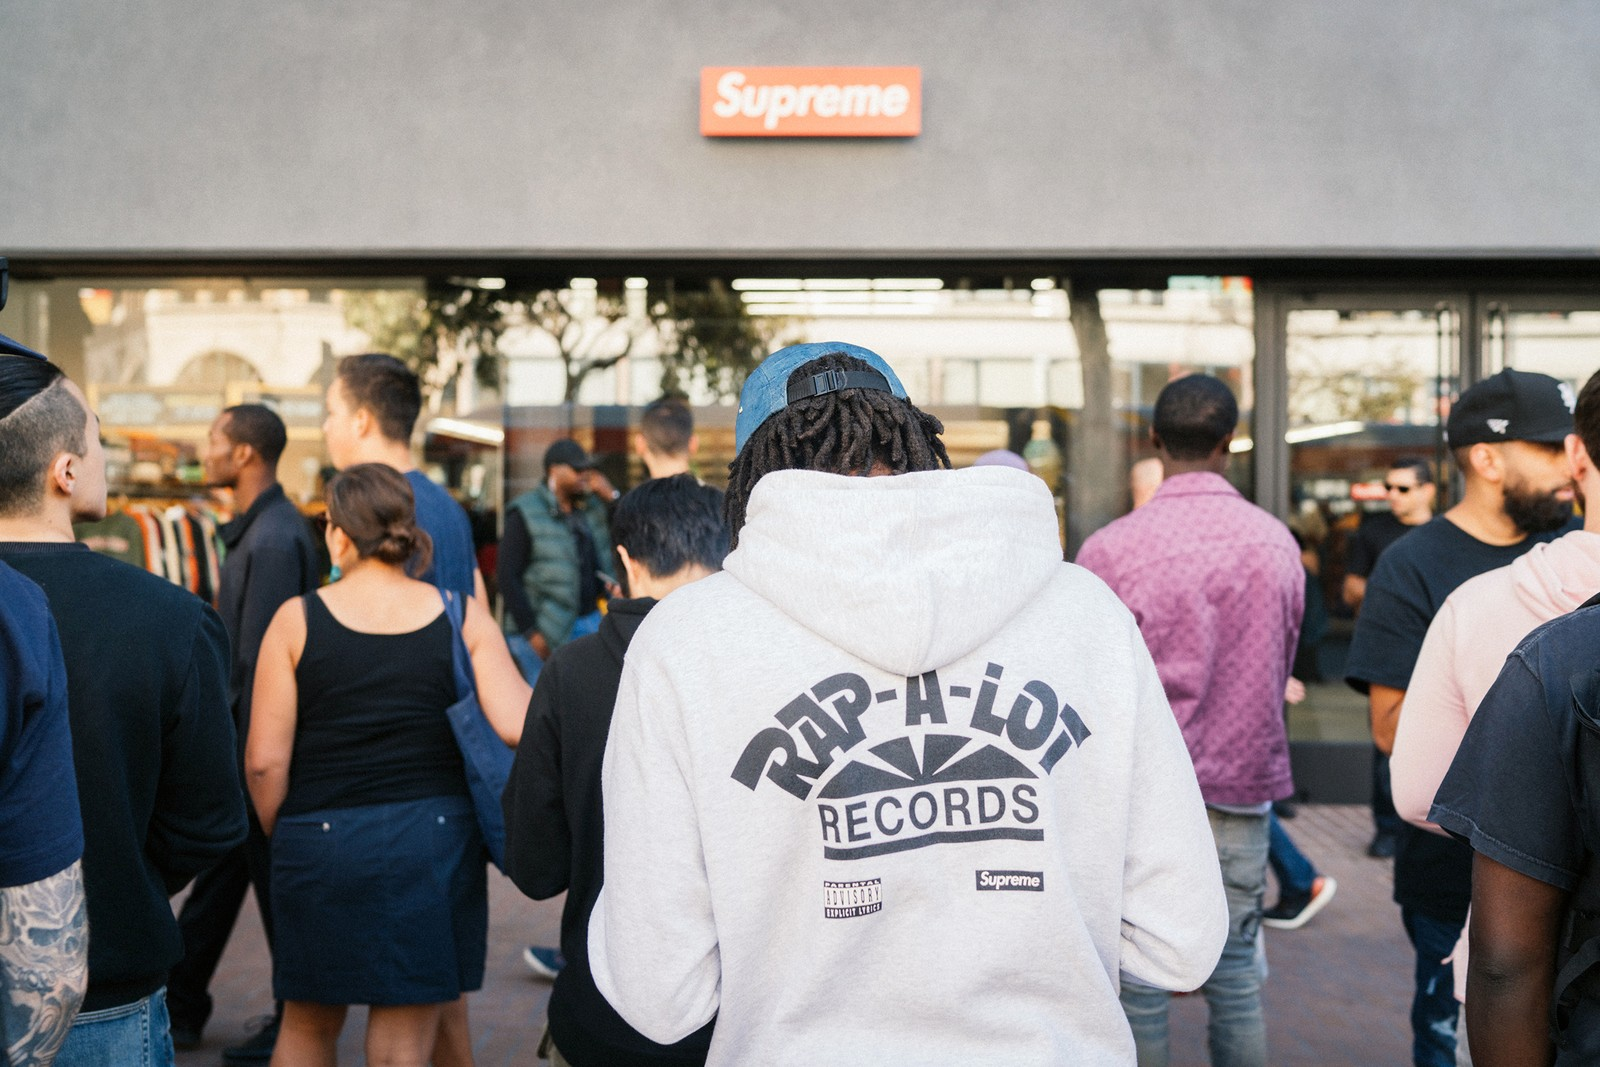 Supreme San Francisco Opening Party Inside Look Line Up Release info location open When Where James Jebbia Jason Dill Tremaine Emory